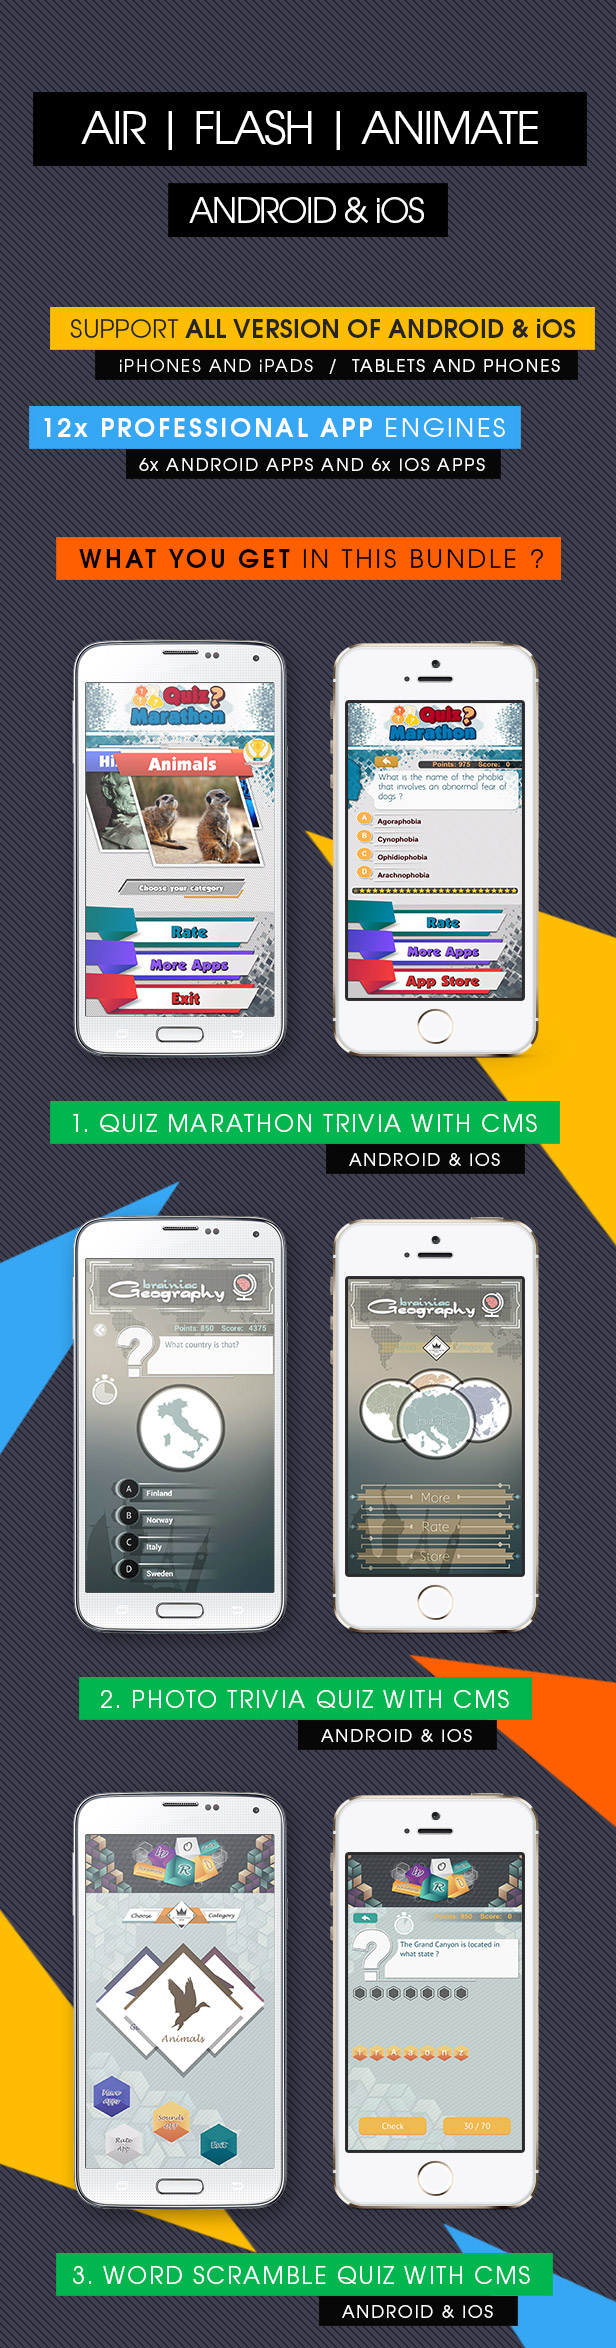 Giga Quiz Bundle Pack - Android & iOS [ 12x Apps ] - 2